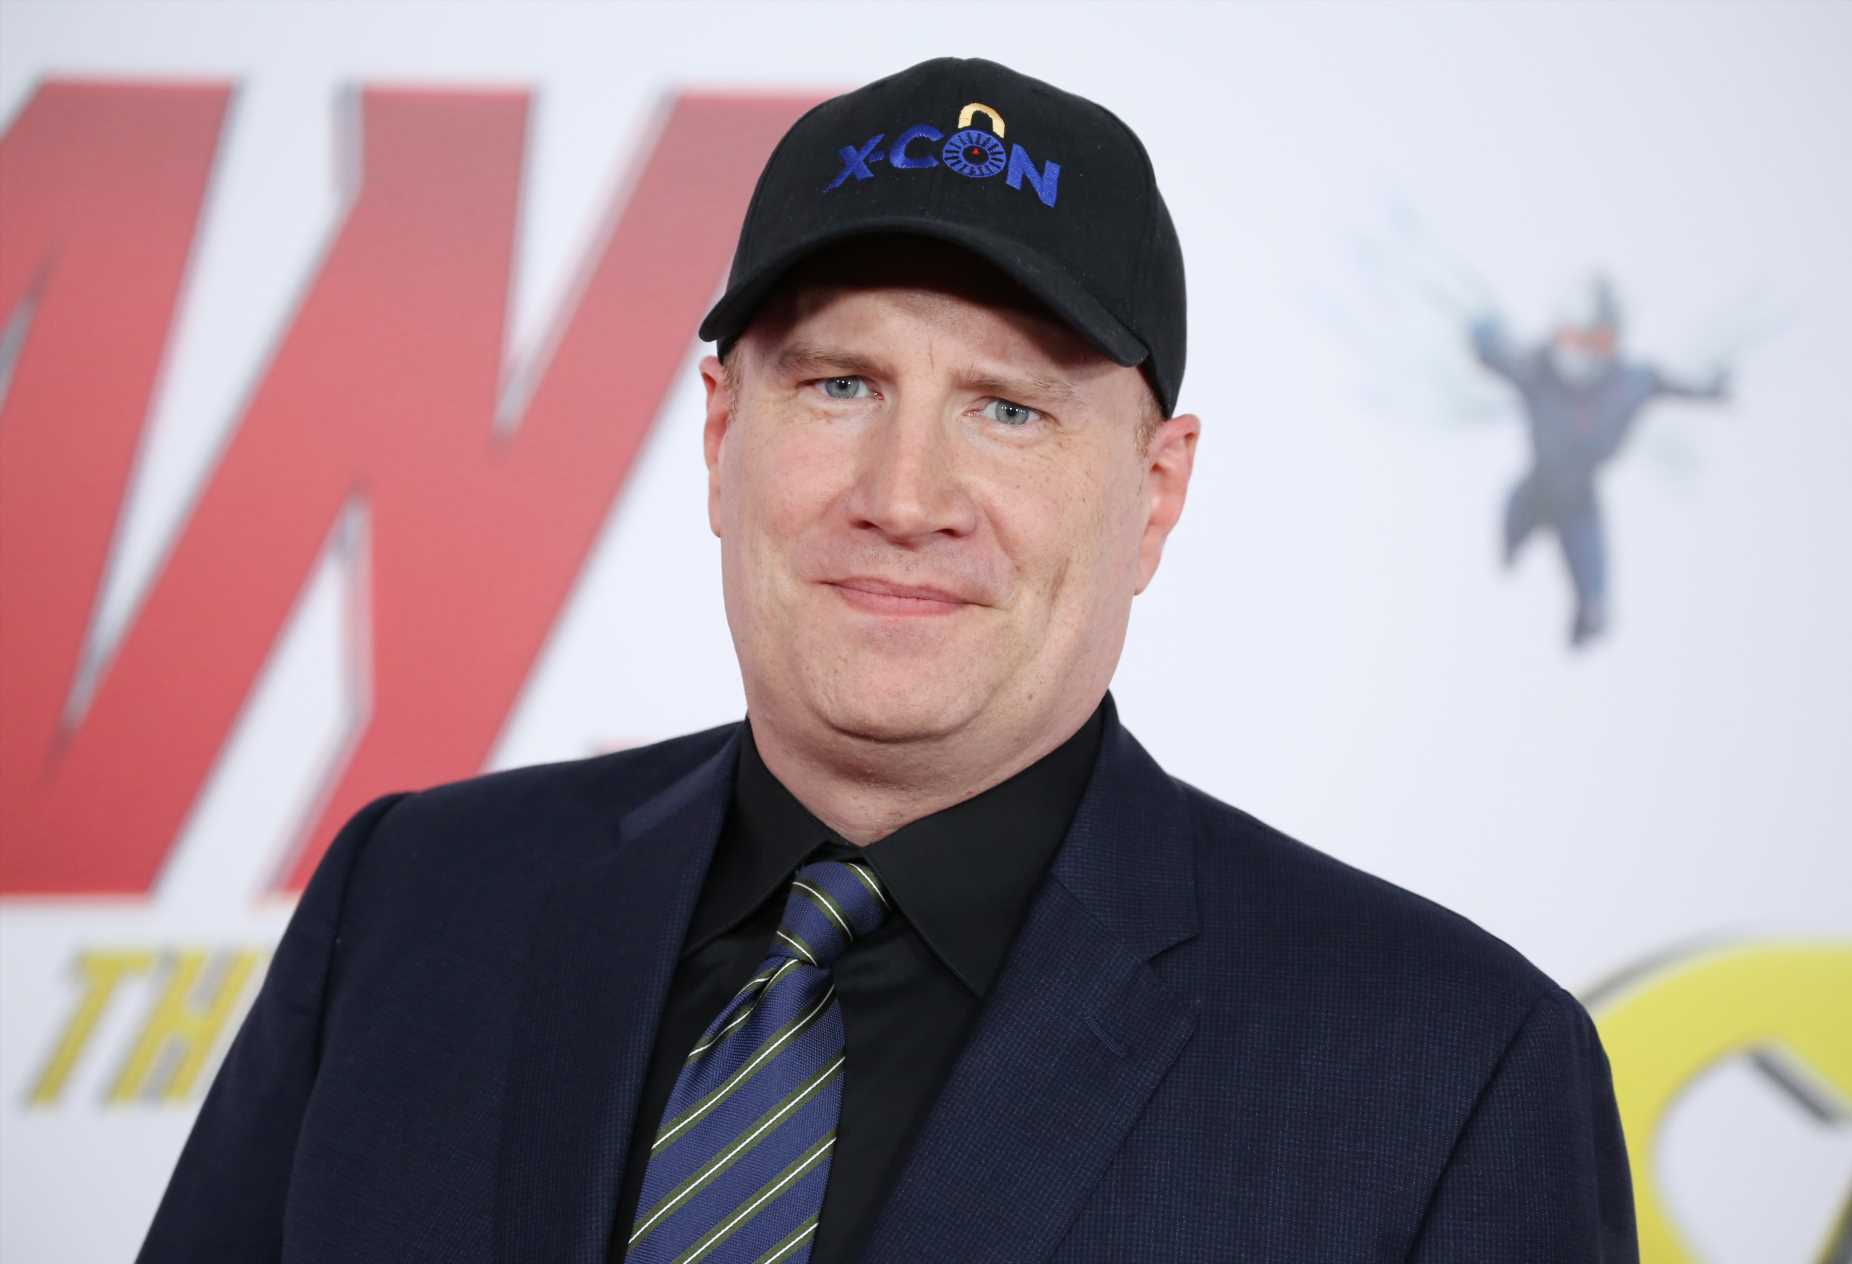 Kevin Feige's 'Star Wars': How Marvel's Head Could Impact the Future of the Franchise